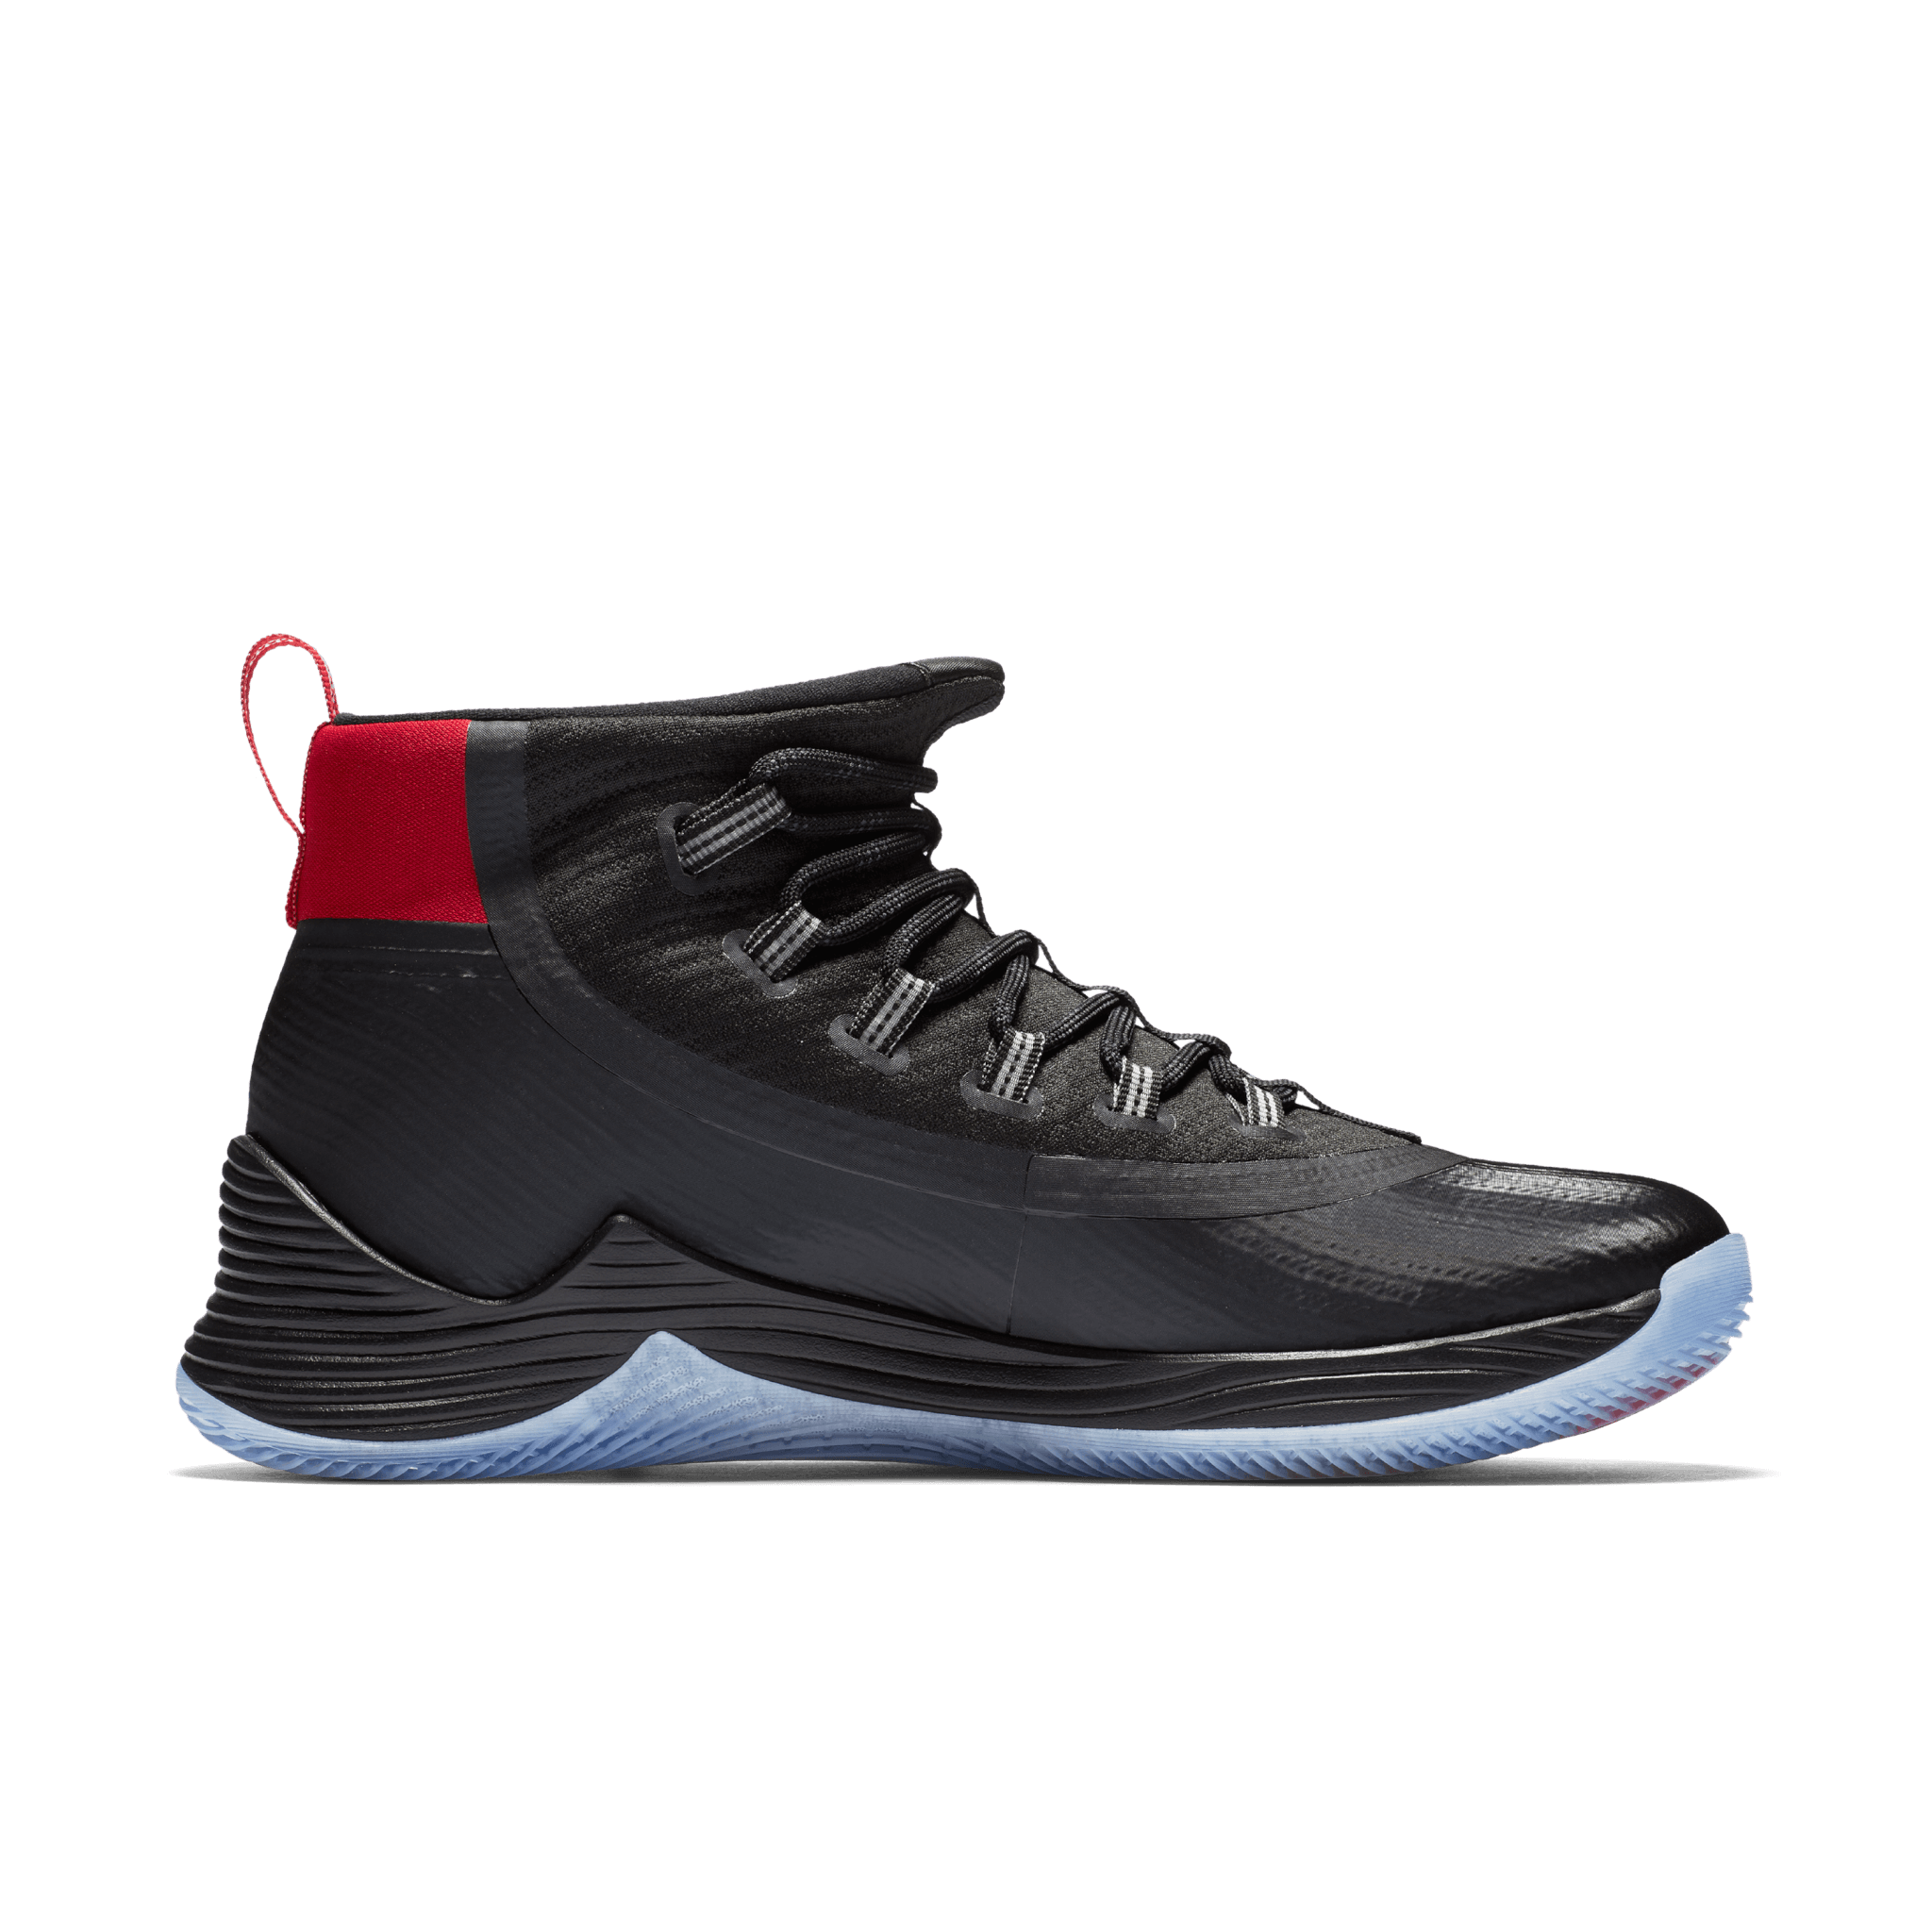 reputable site 52b6a 463f1 Jordan Ultra Fly 2 3